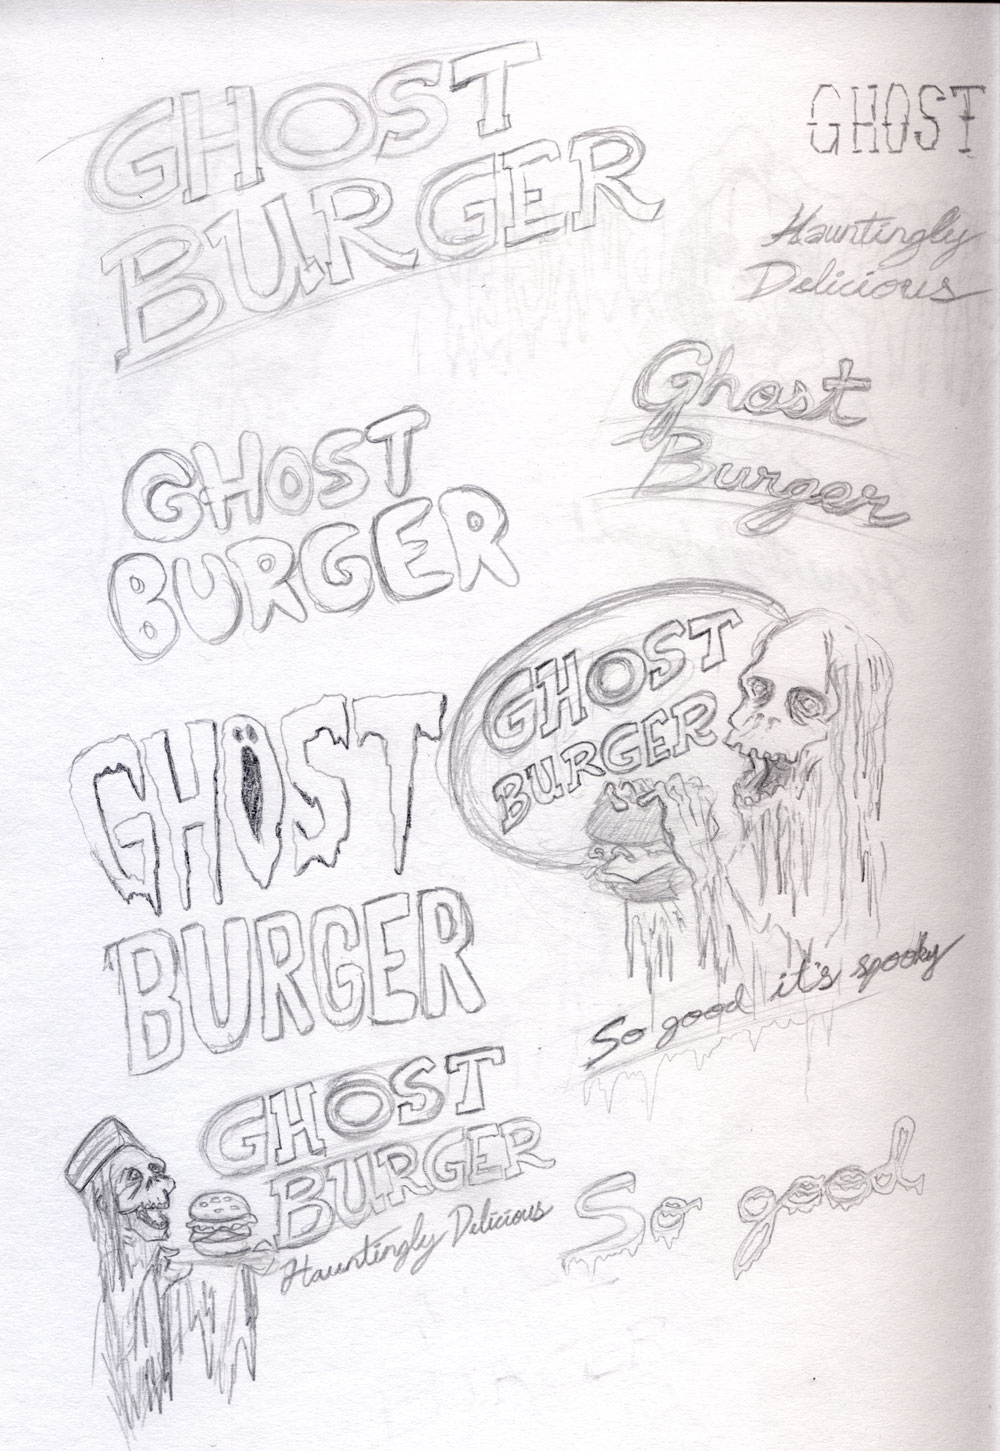 Ghost Burger - image 2 - student project